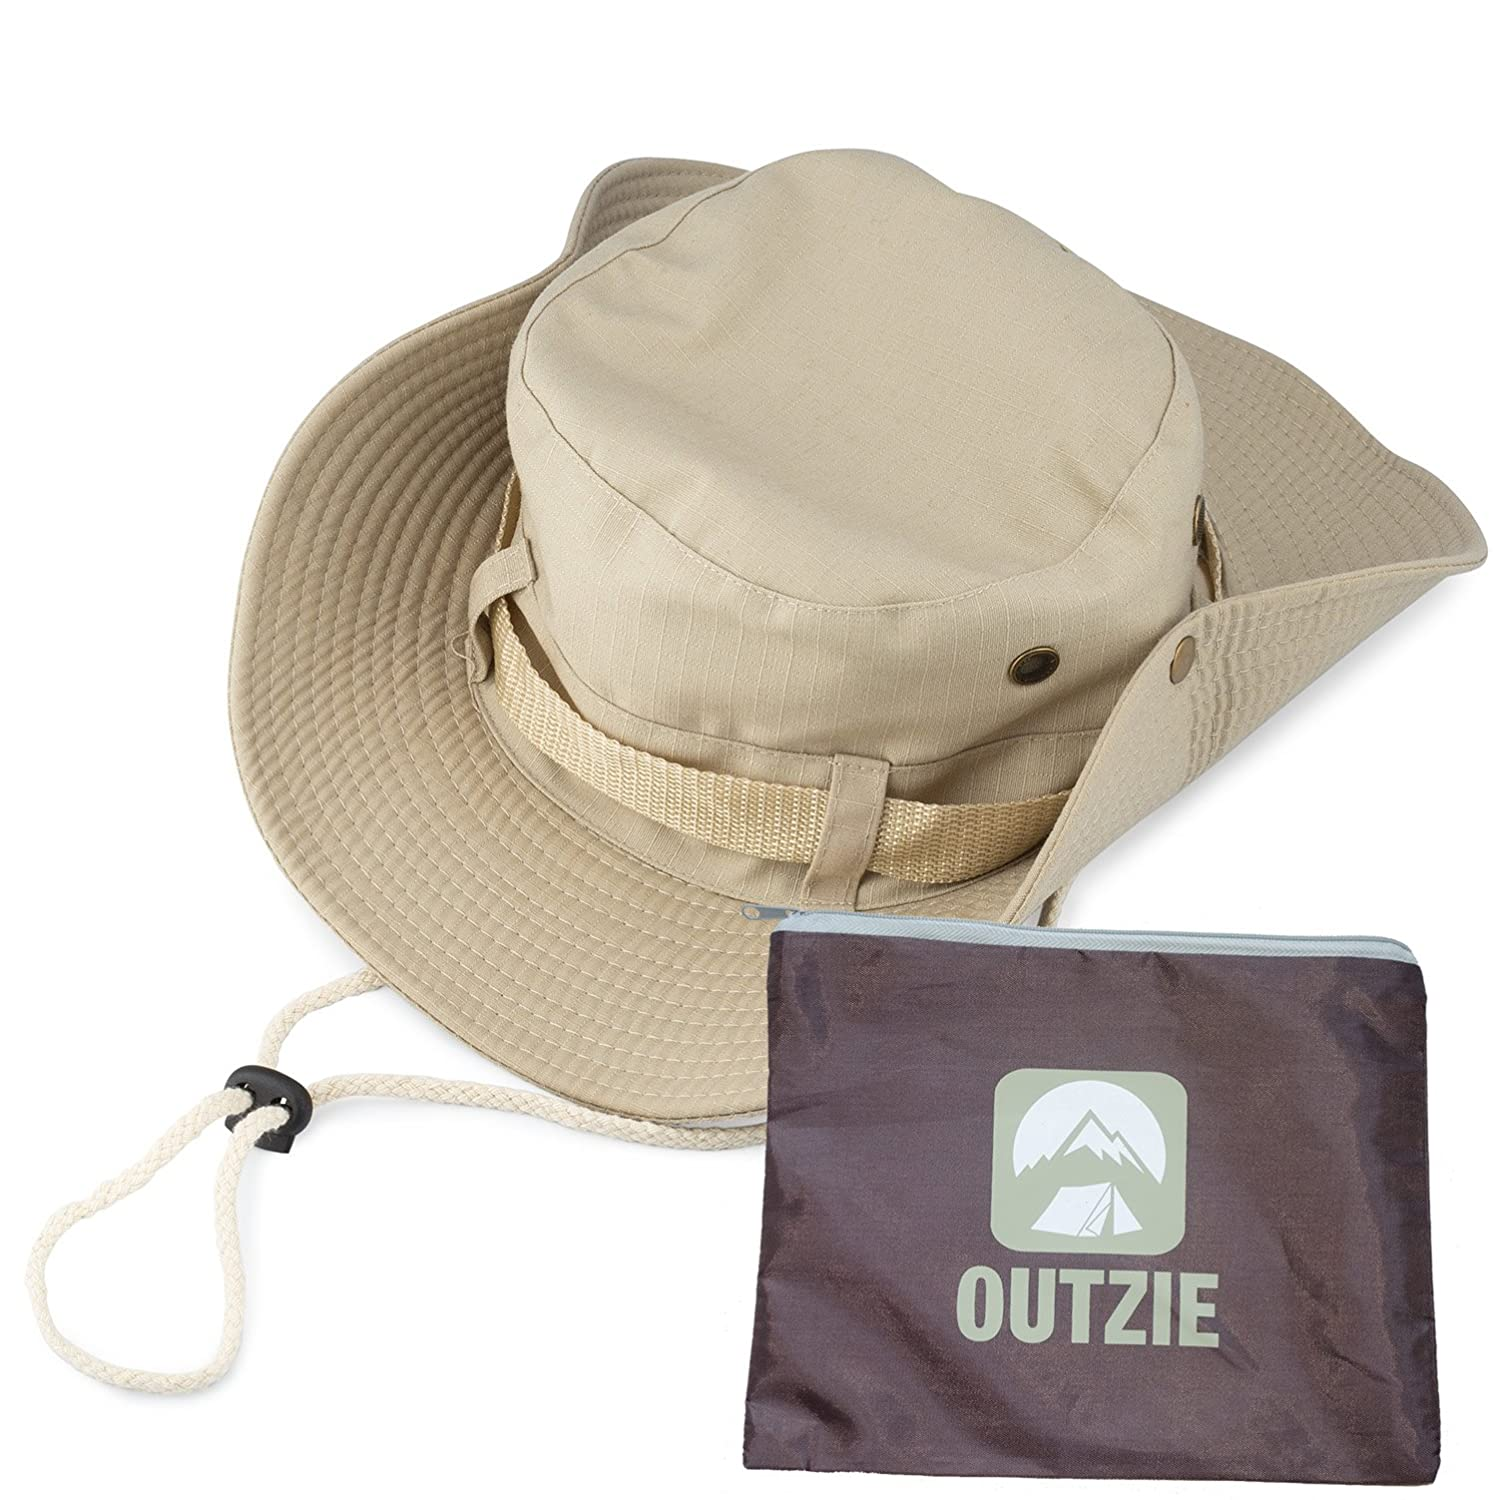 OUTZIE Wide Brim Packable Booney Sun Hat Max Protection for UVA Lightweight Cotton Perfect for Fishing Gardening Hiking Camping The Beach and All Outdoor Activity Bonus Nylon Travel Bag